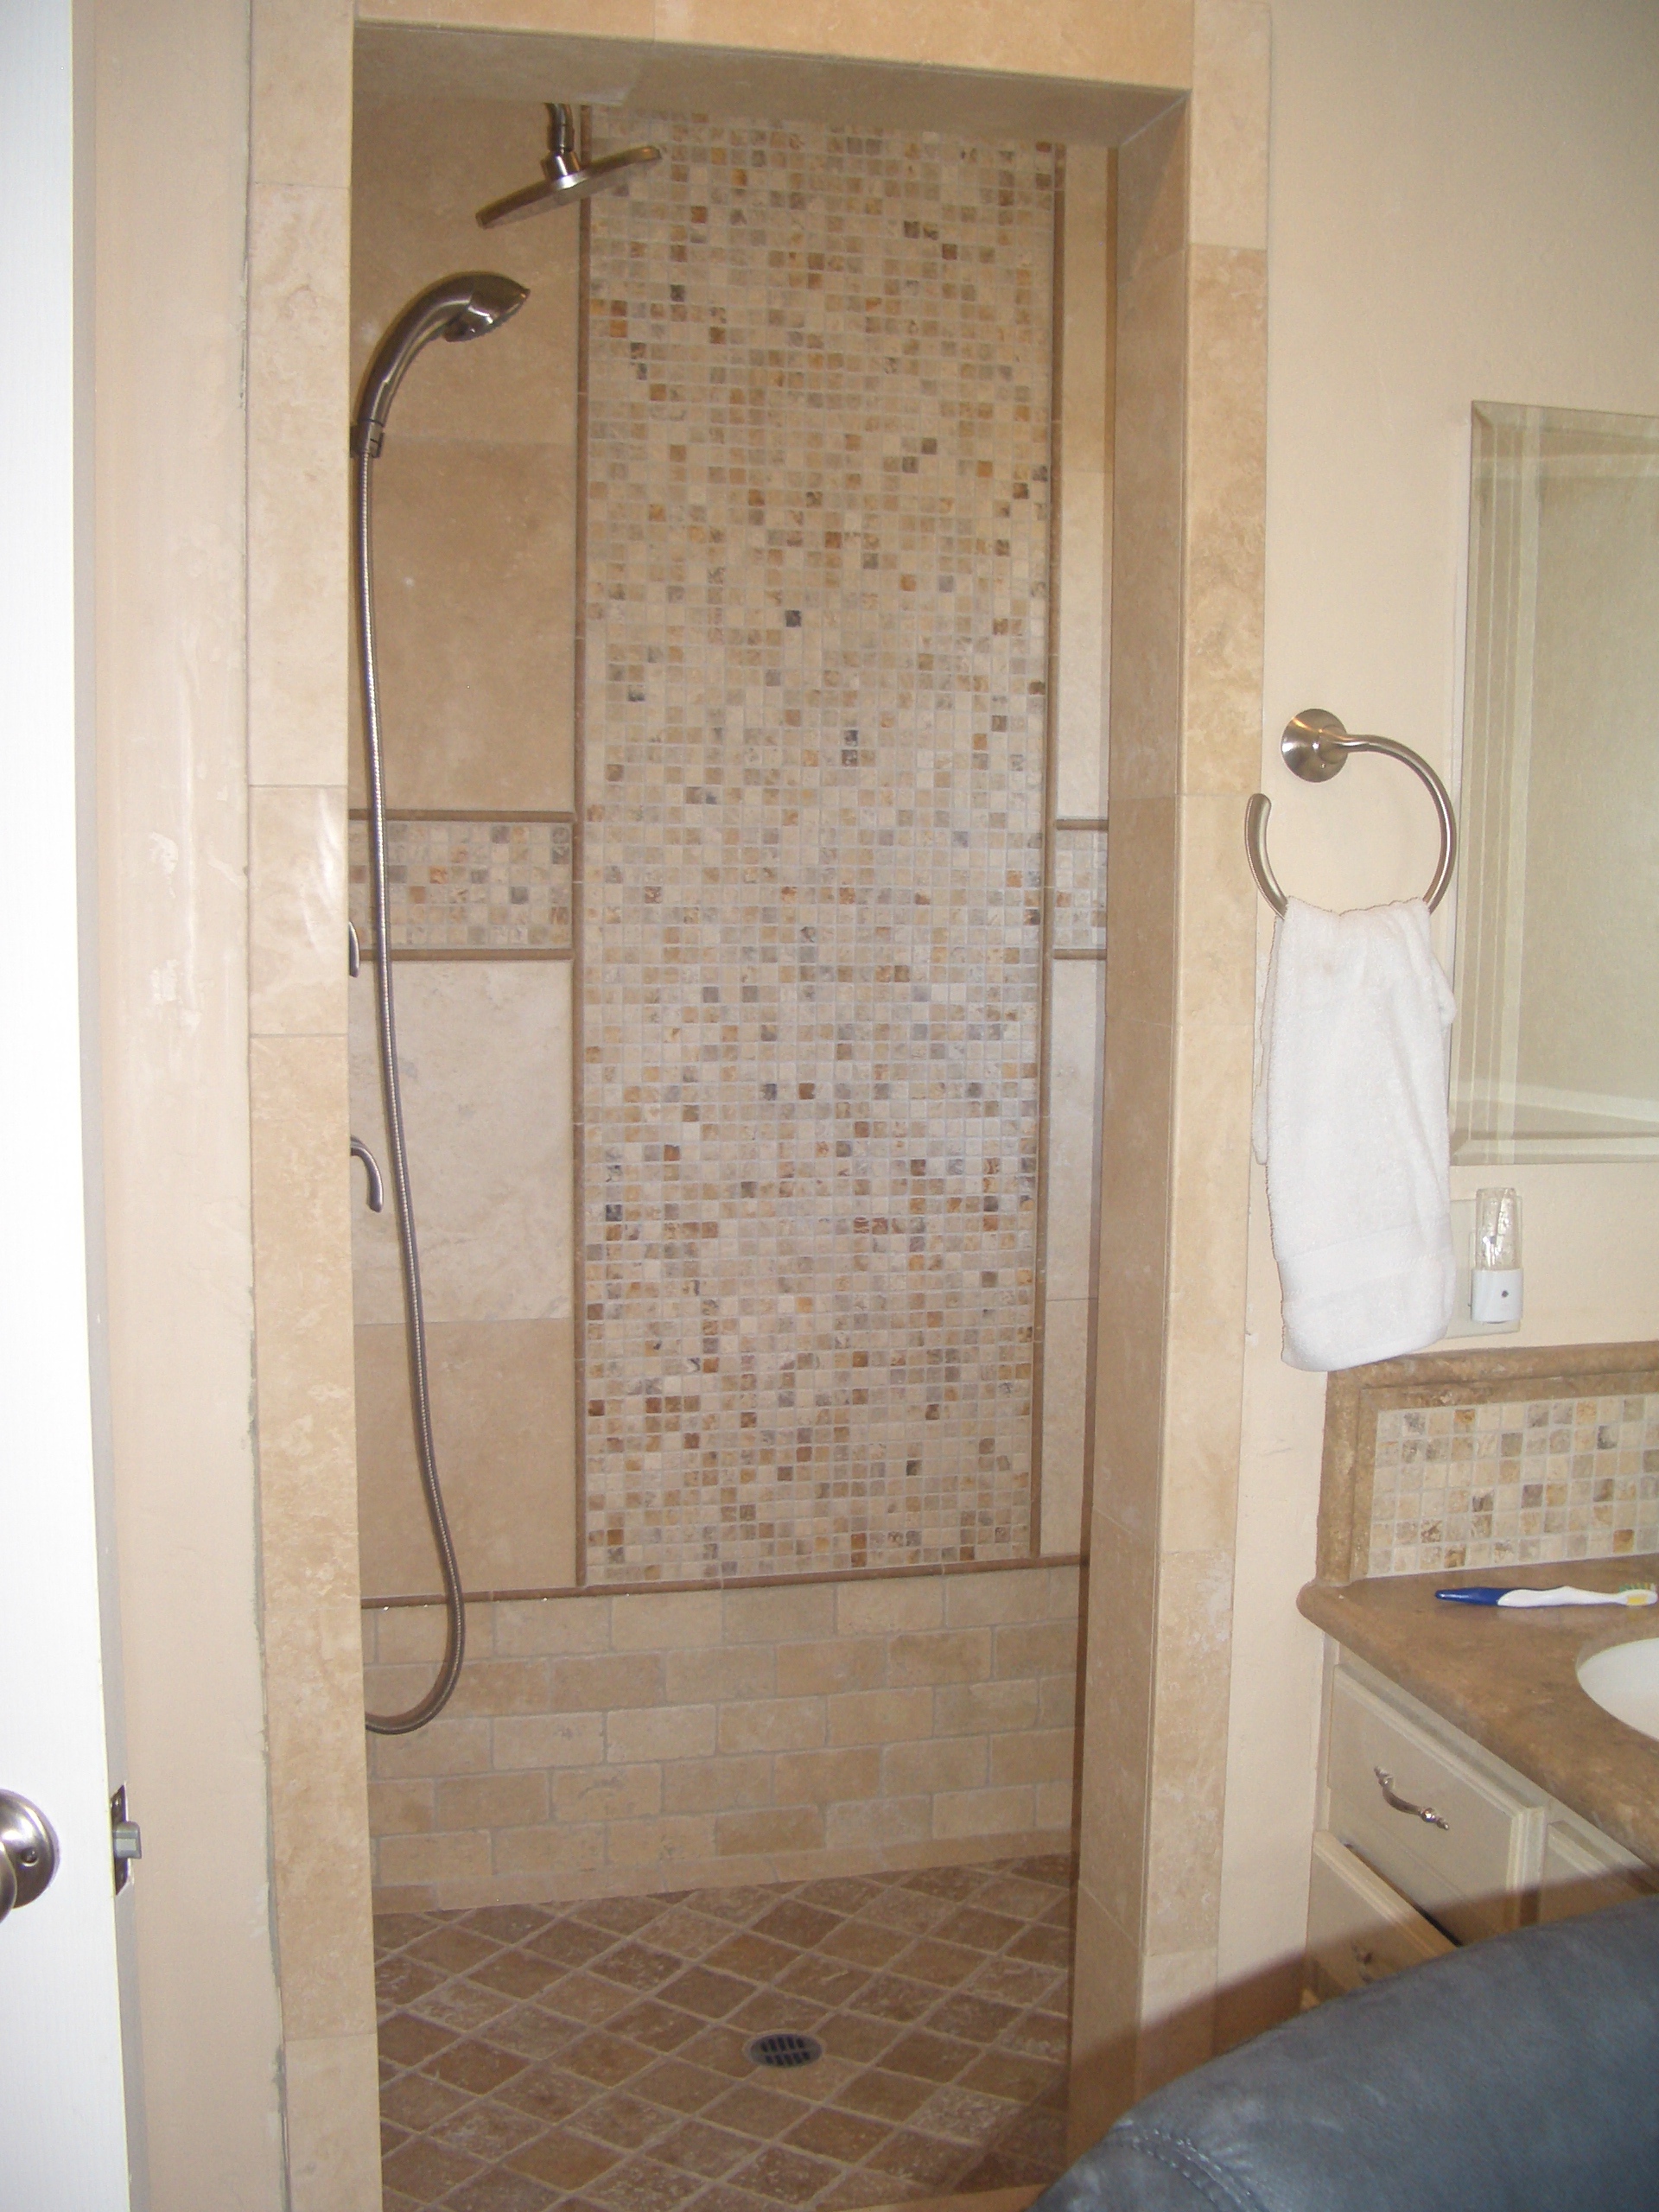 Precise flooring and showers professional installation of tile schroeder job 042 dailygadgetfo Gallery